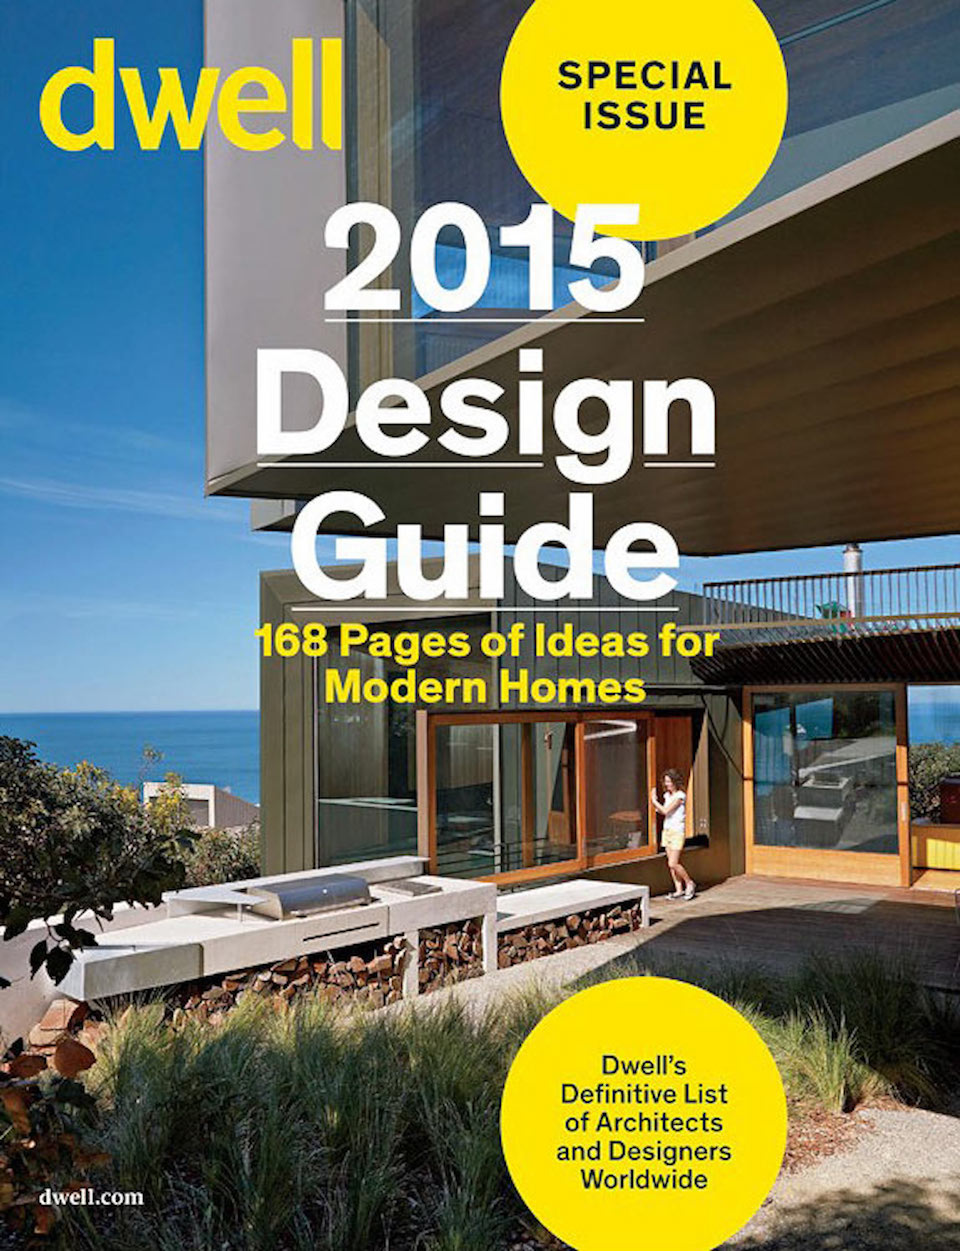 Dwell. 2015 Design Guide